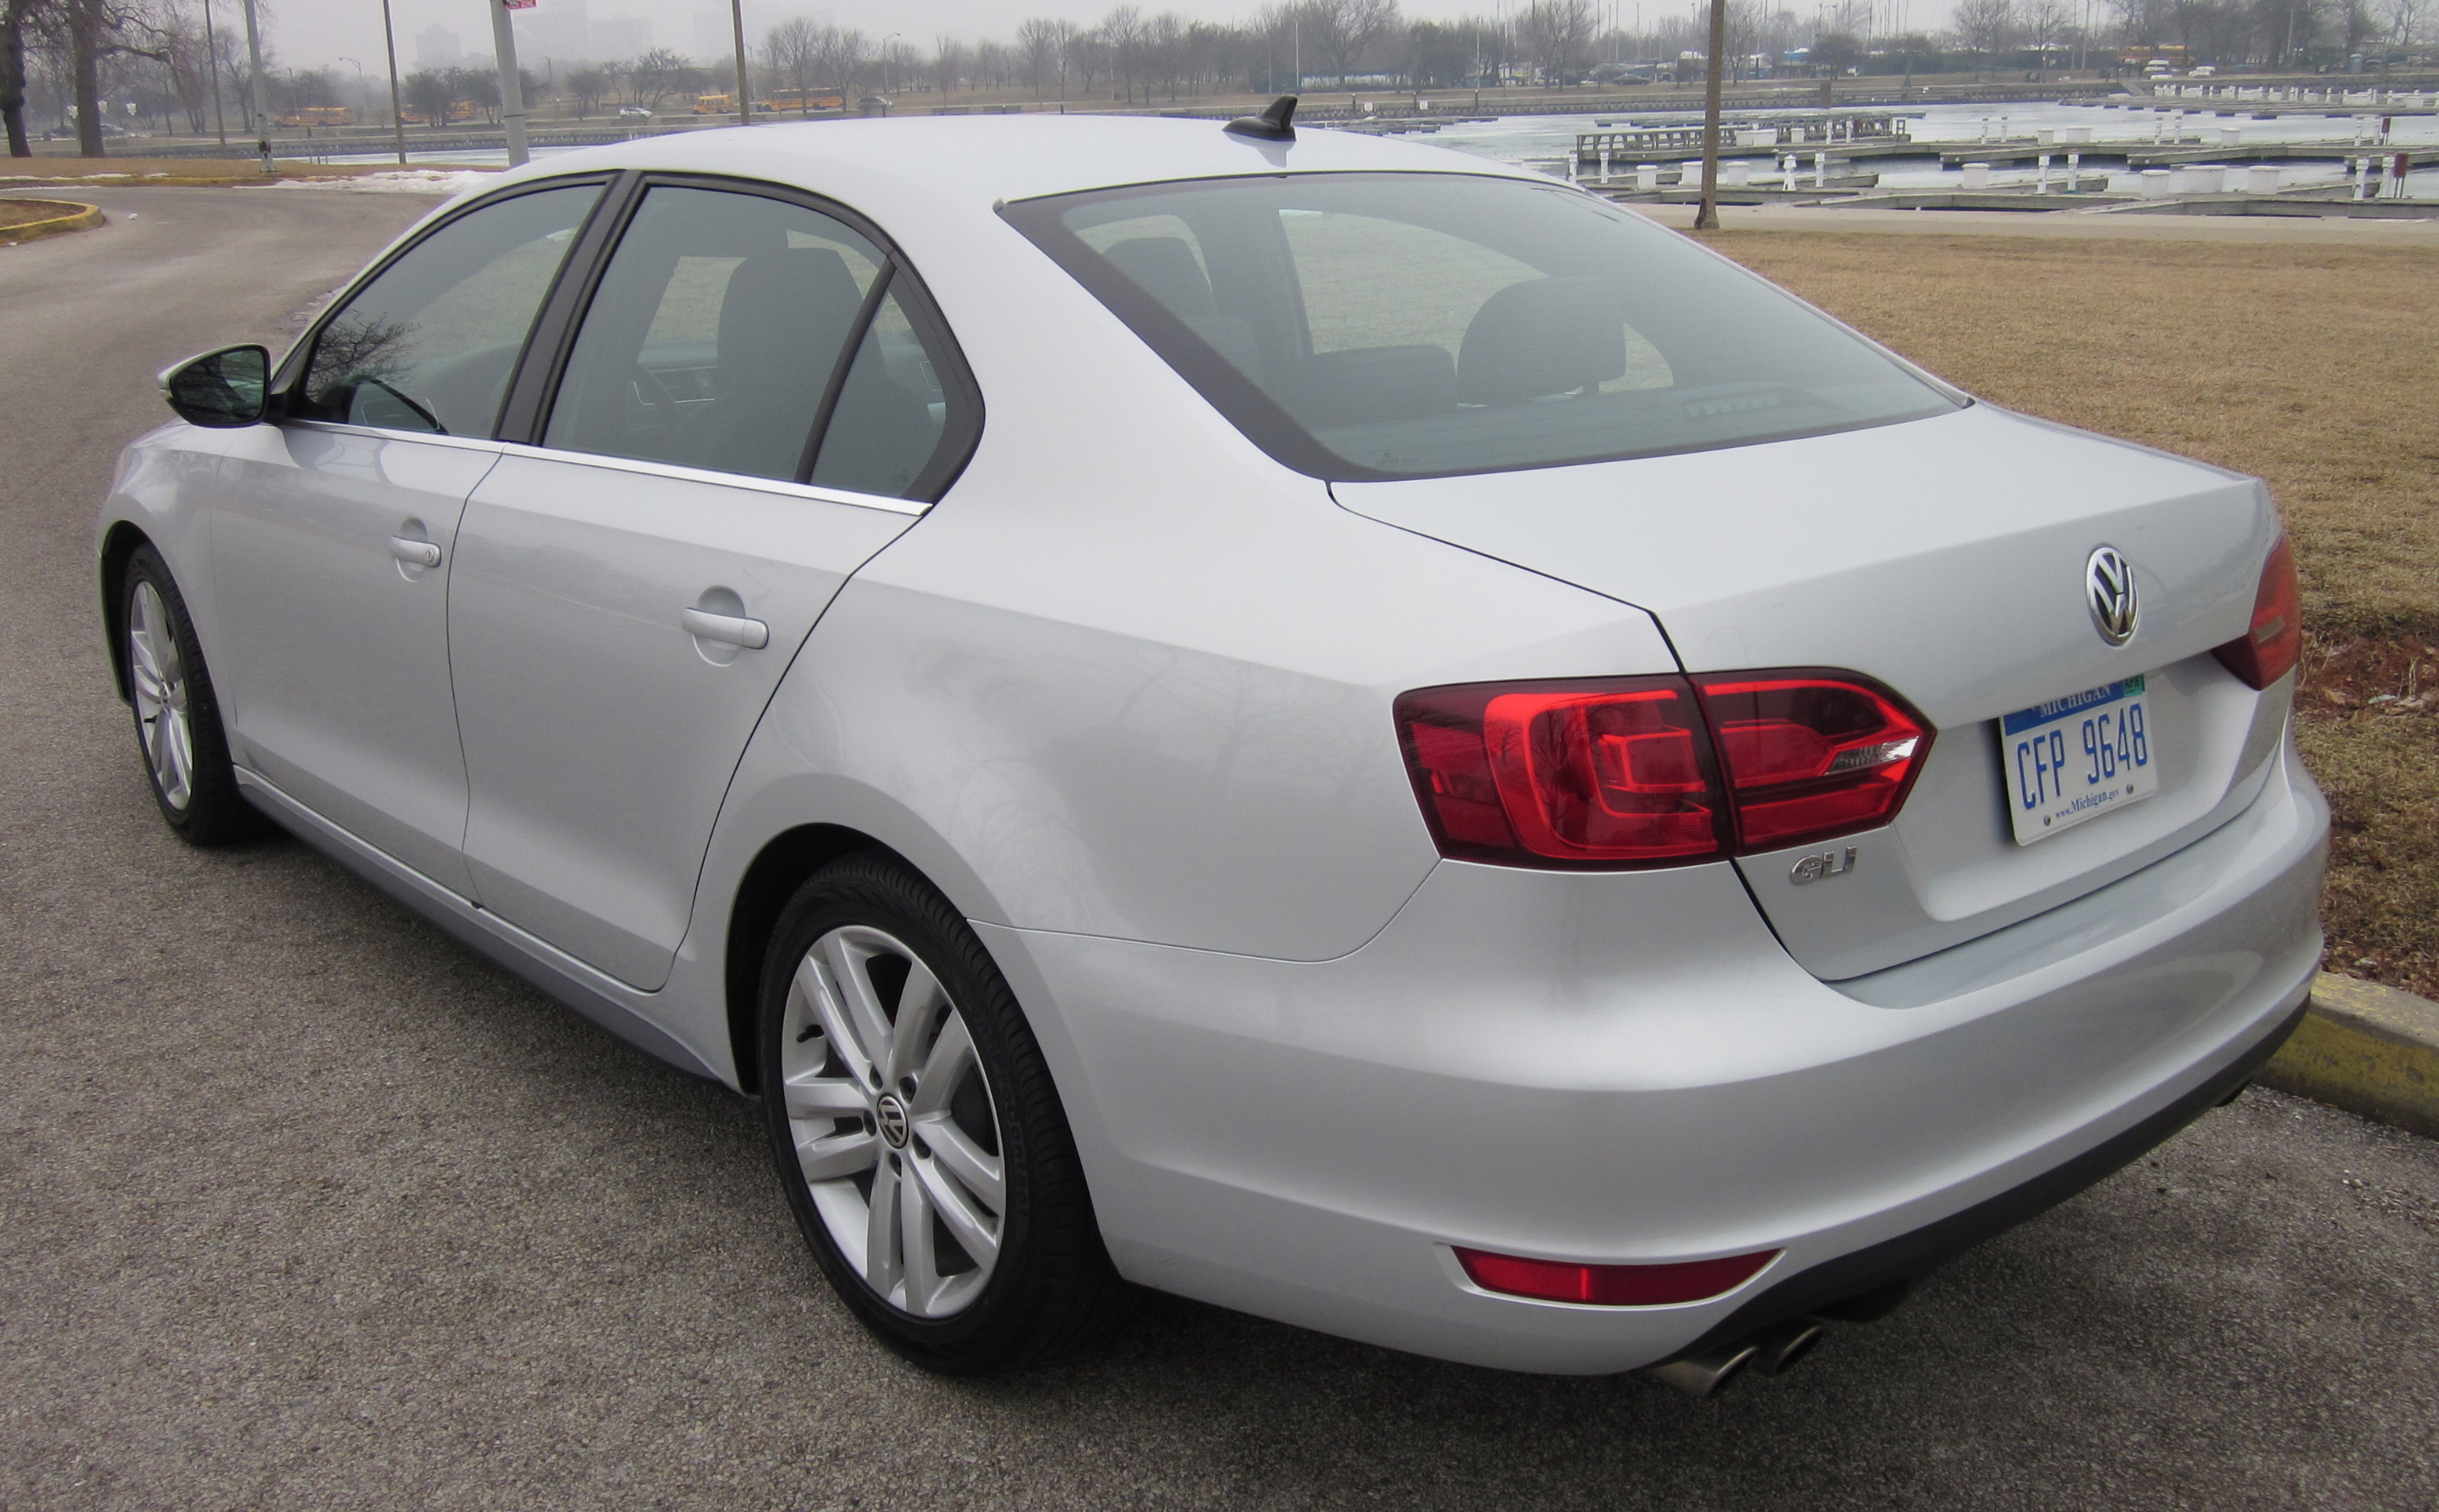 2012 volkswagen jetta gli review and fun drivelarry nutson +video